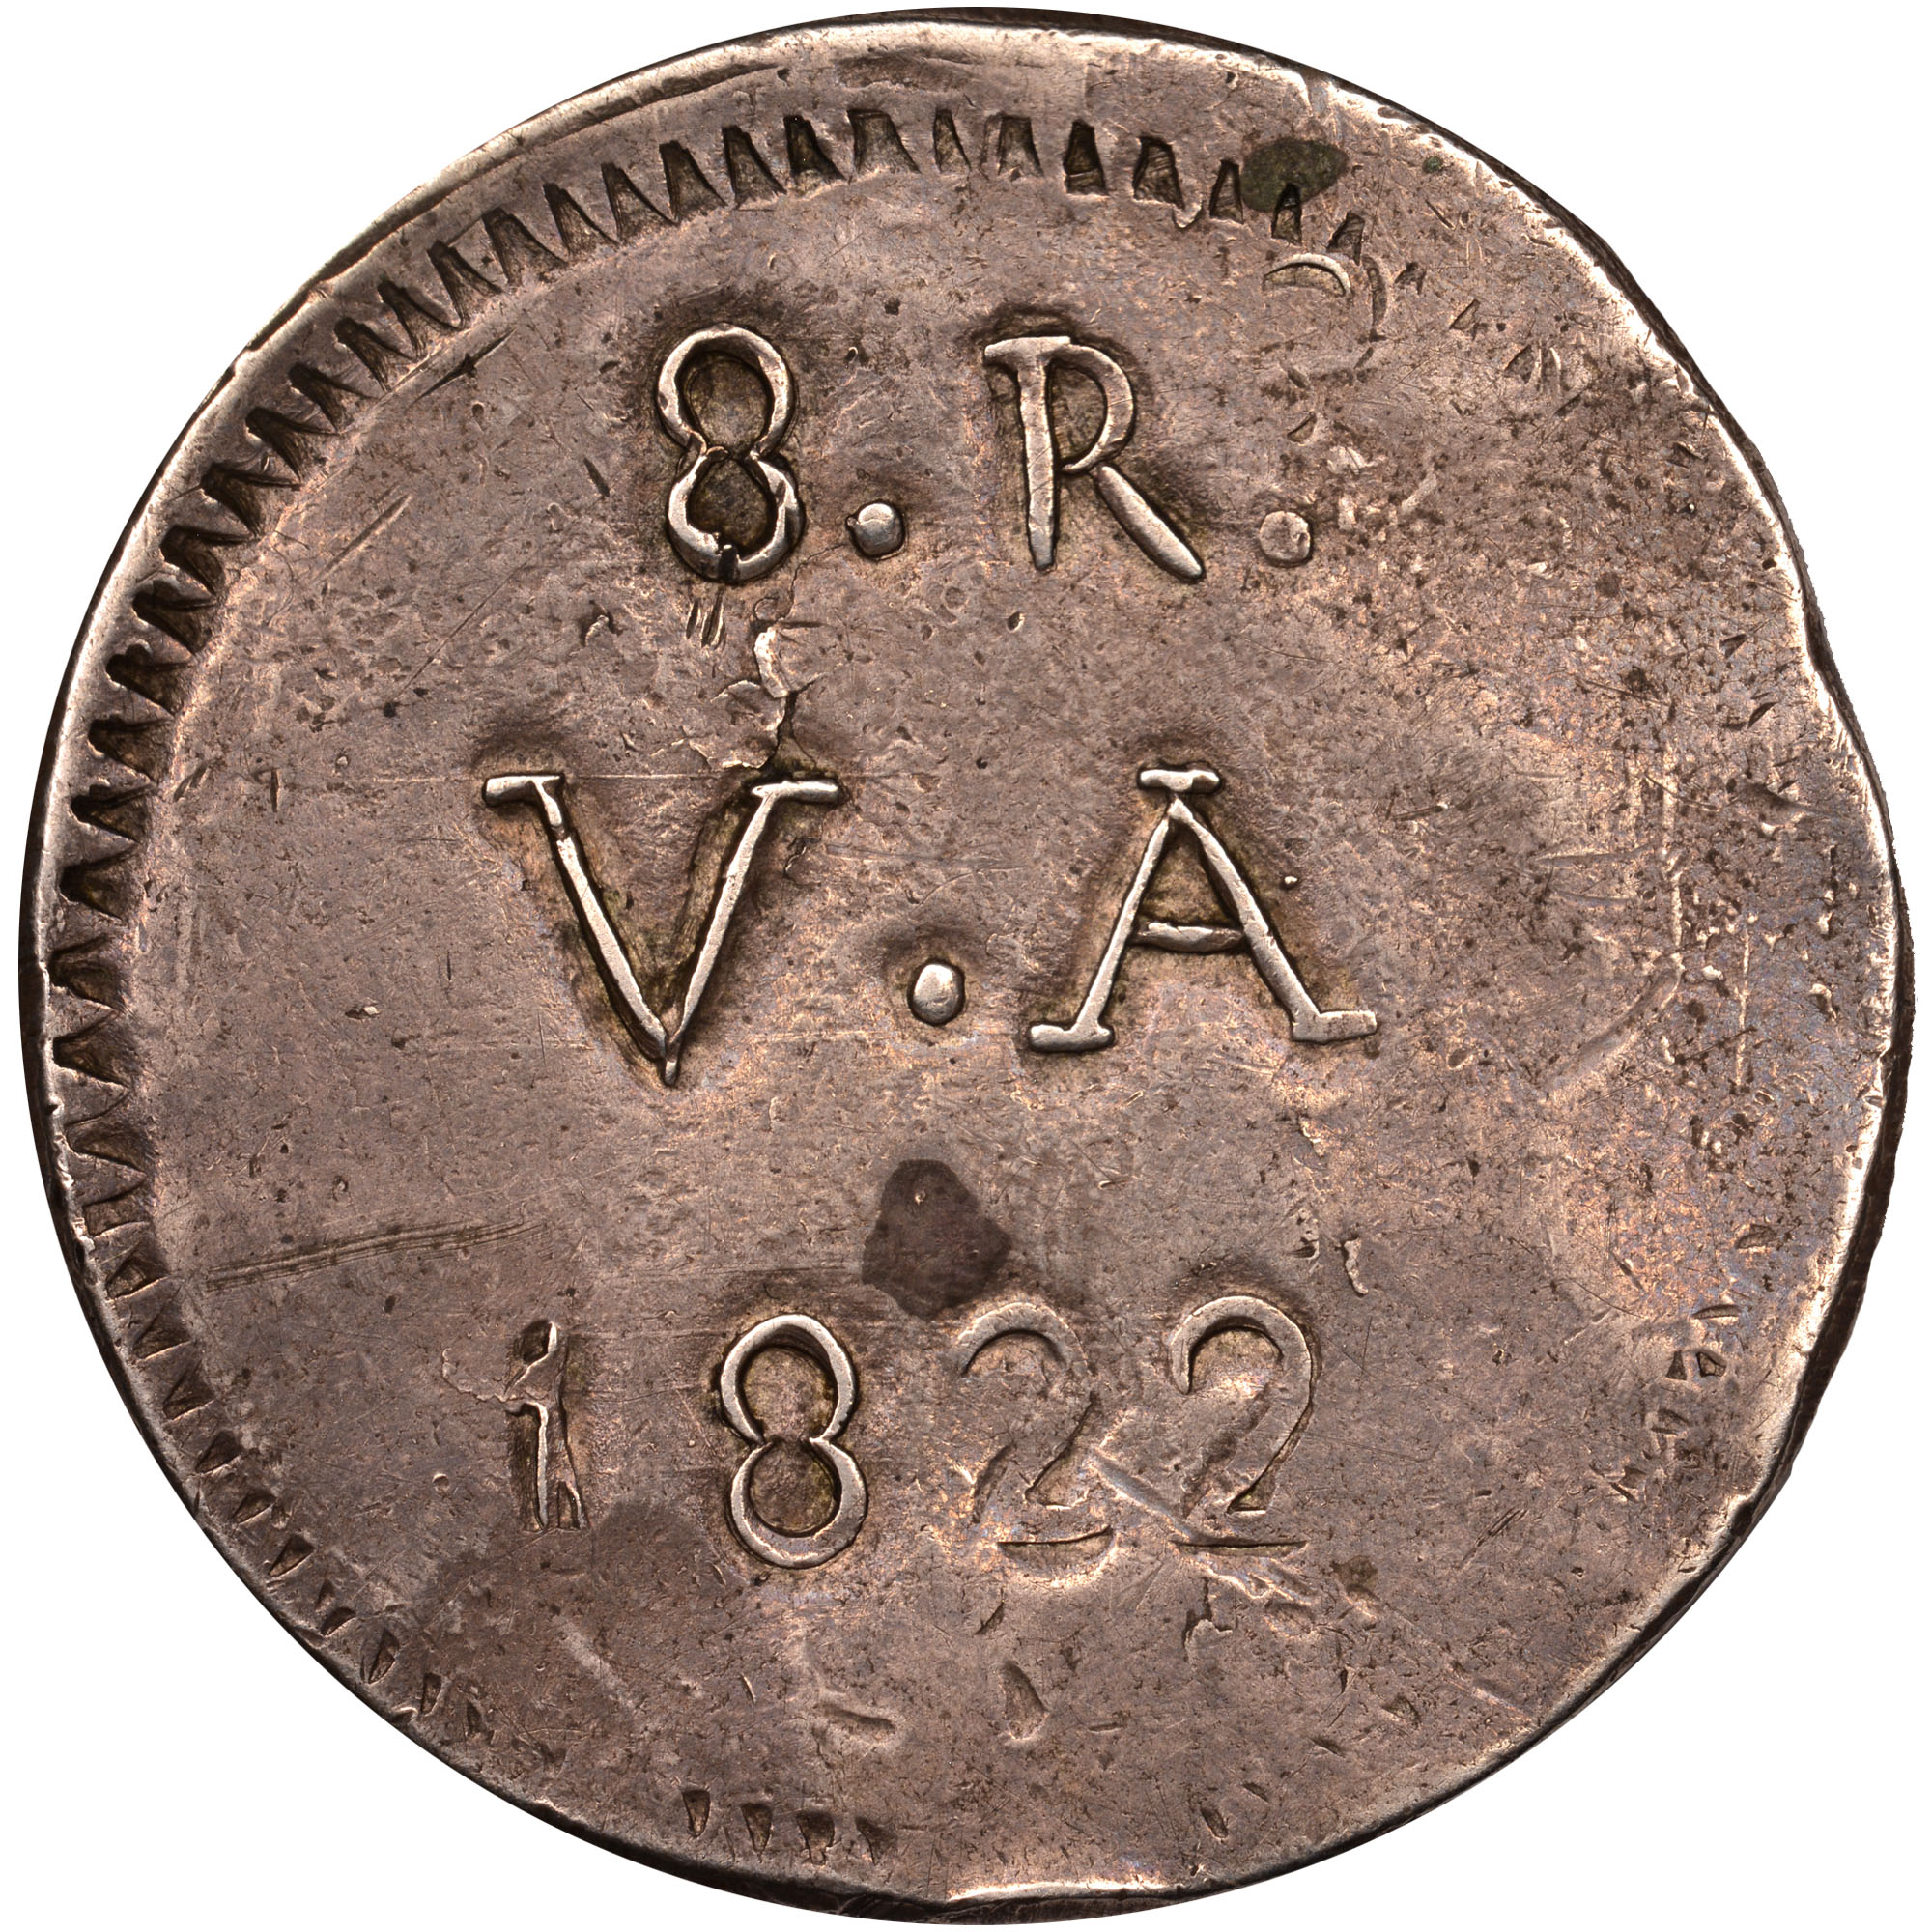 Chile VALDIVIA 8 Reales obverse